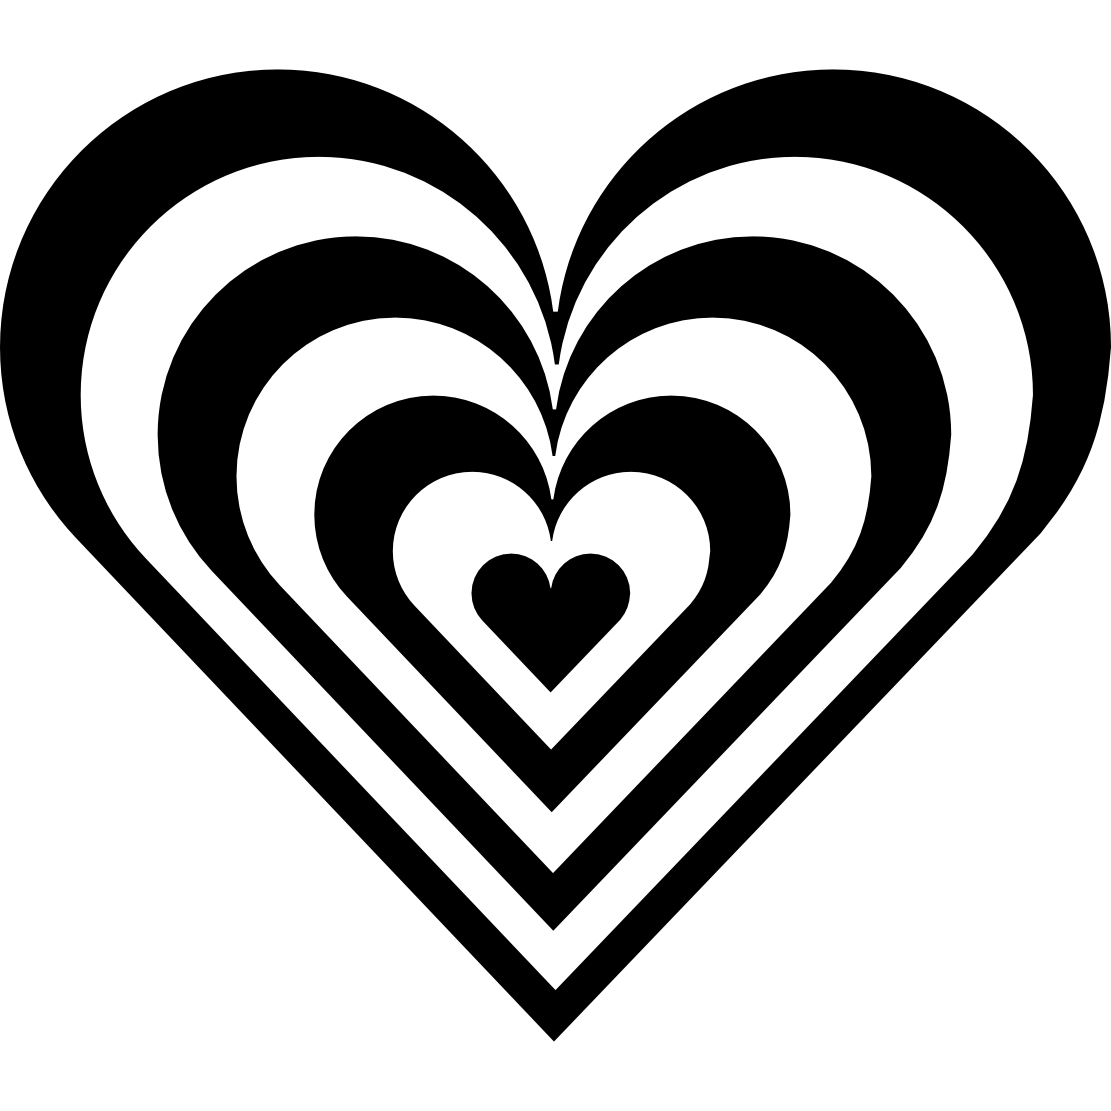 Black and white clipart heart graphic transparent download Clipart Heart Black And White | Clipart Panda - Free Clipart Images graphic transparent download